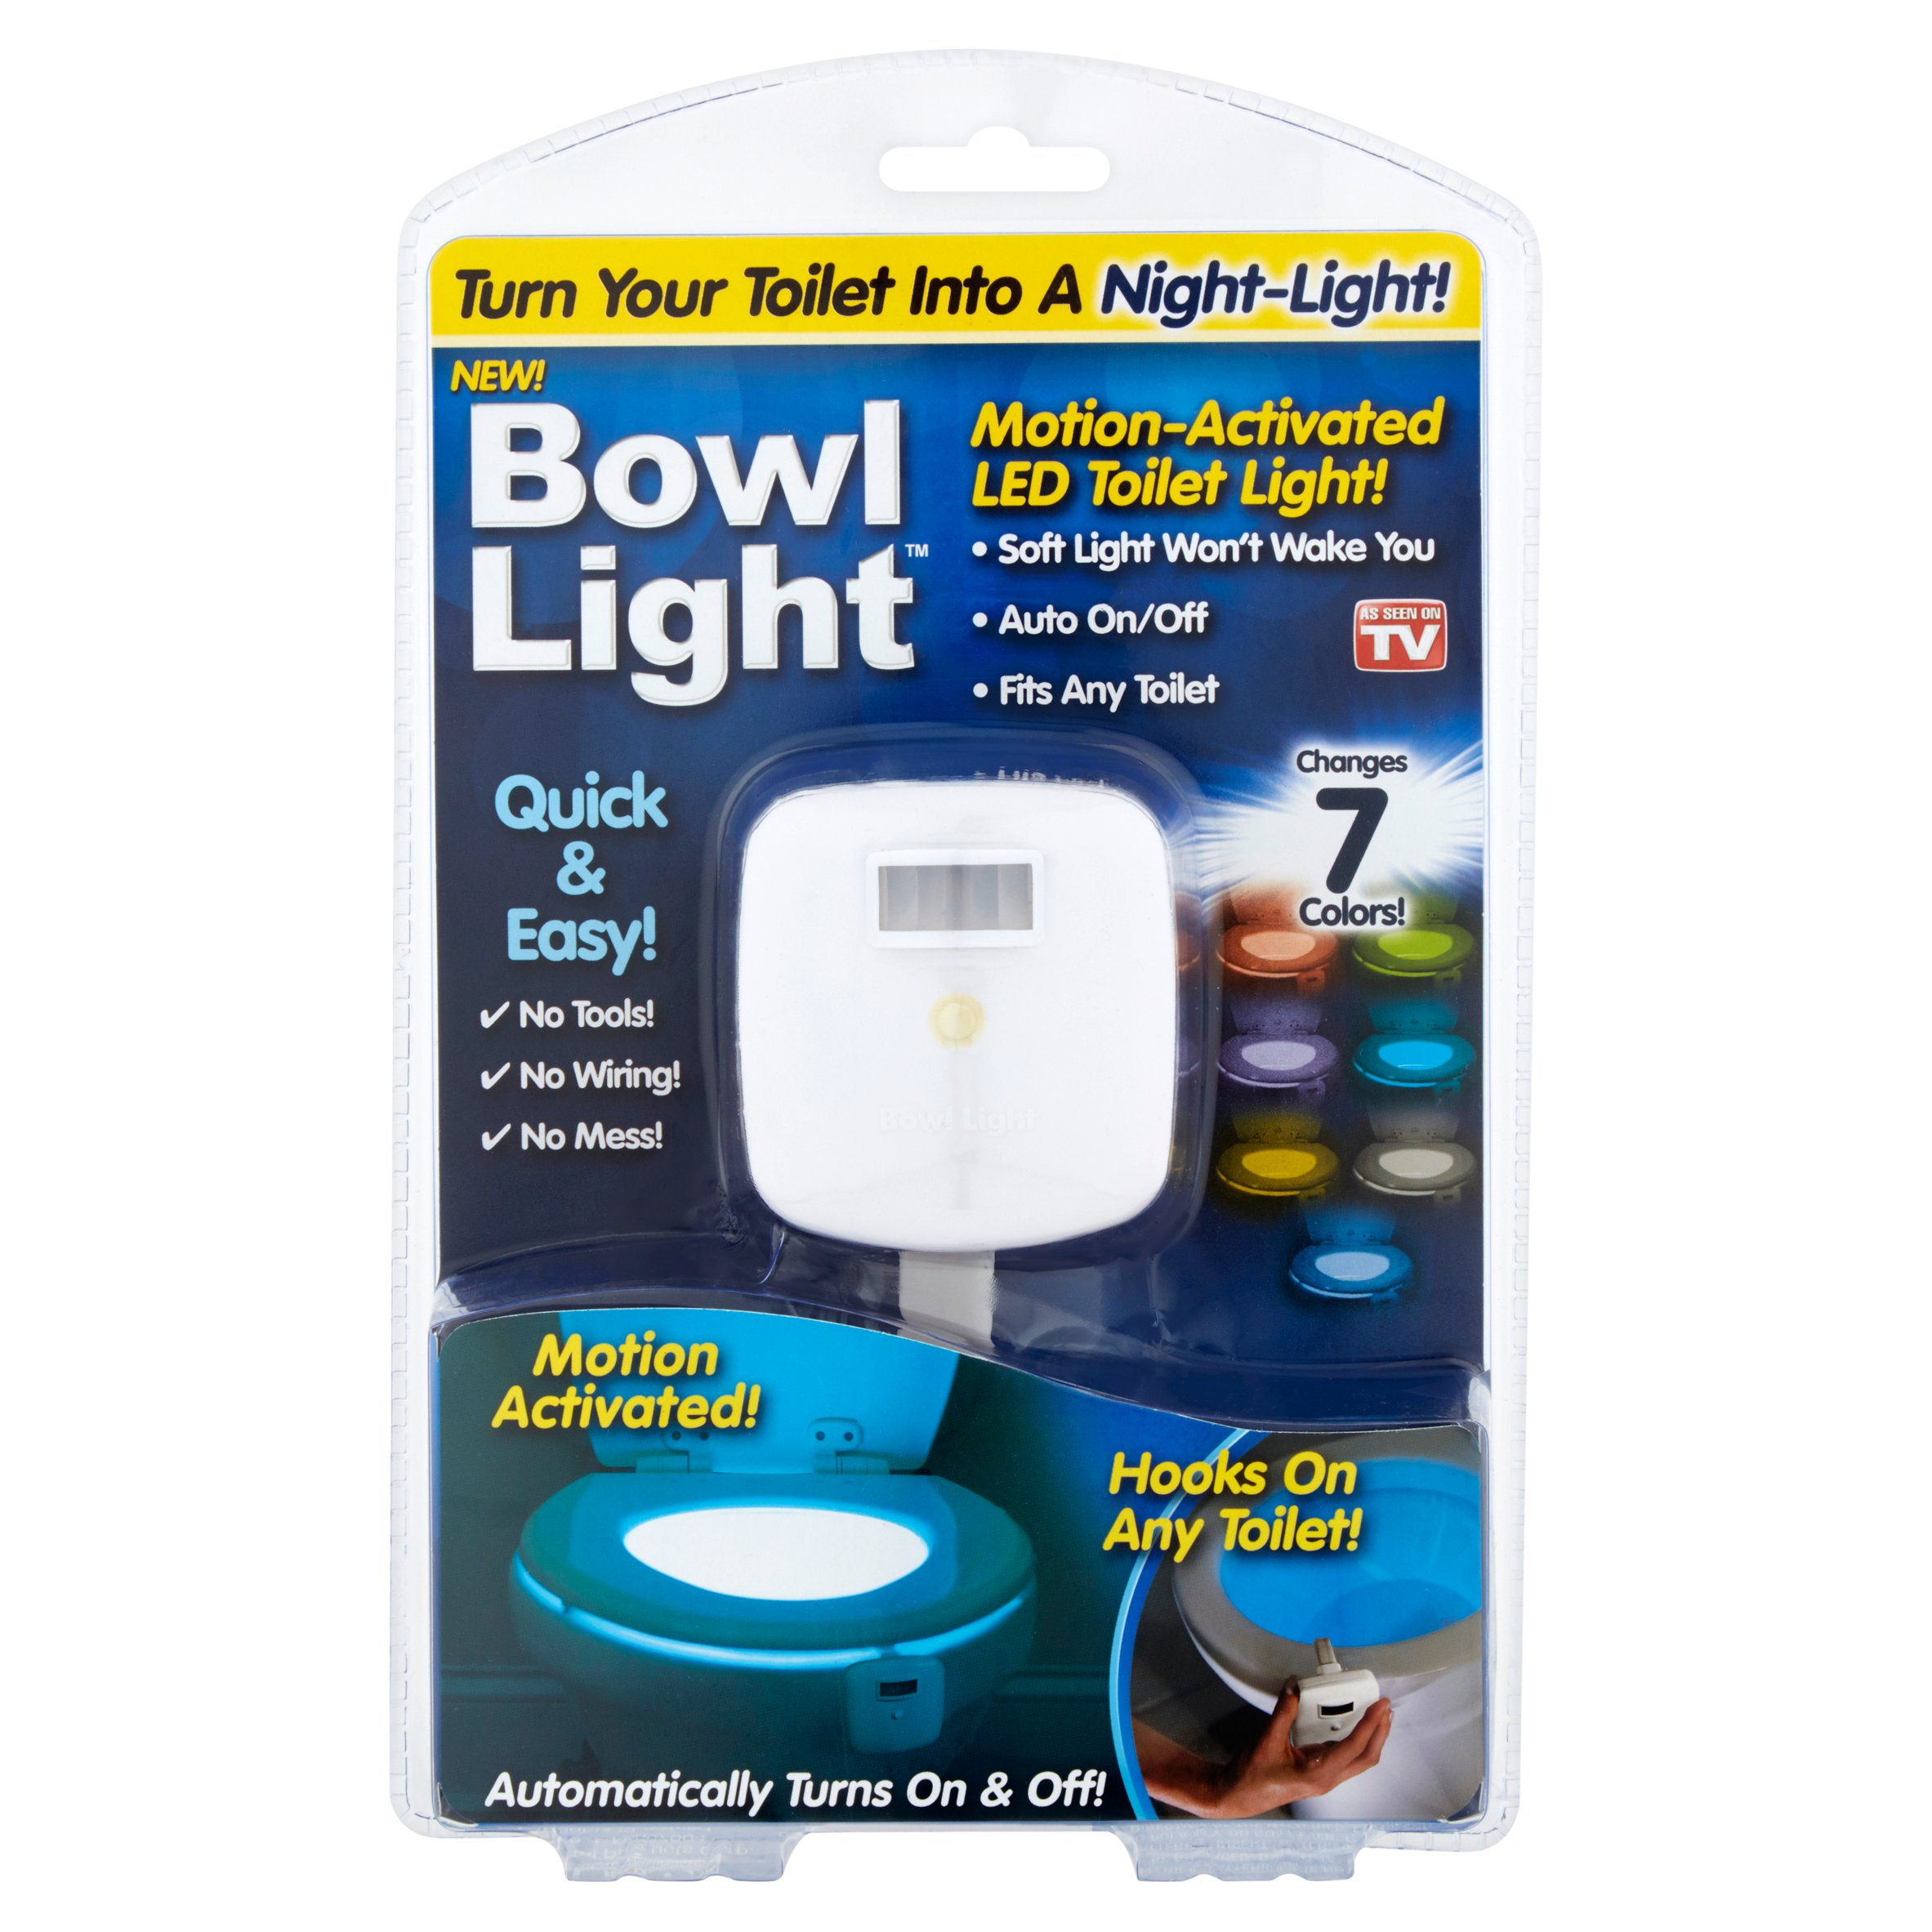 As Seen on TV Bowl Light Motion-Activated LED Toilet Light, 1 Each